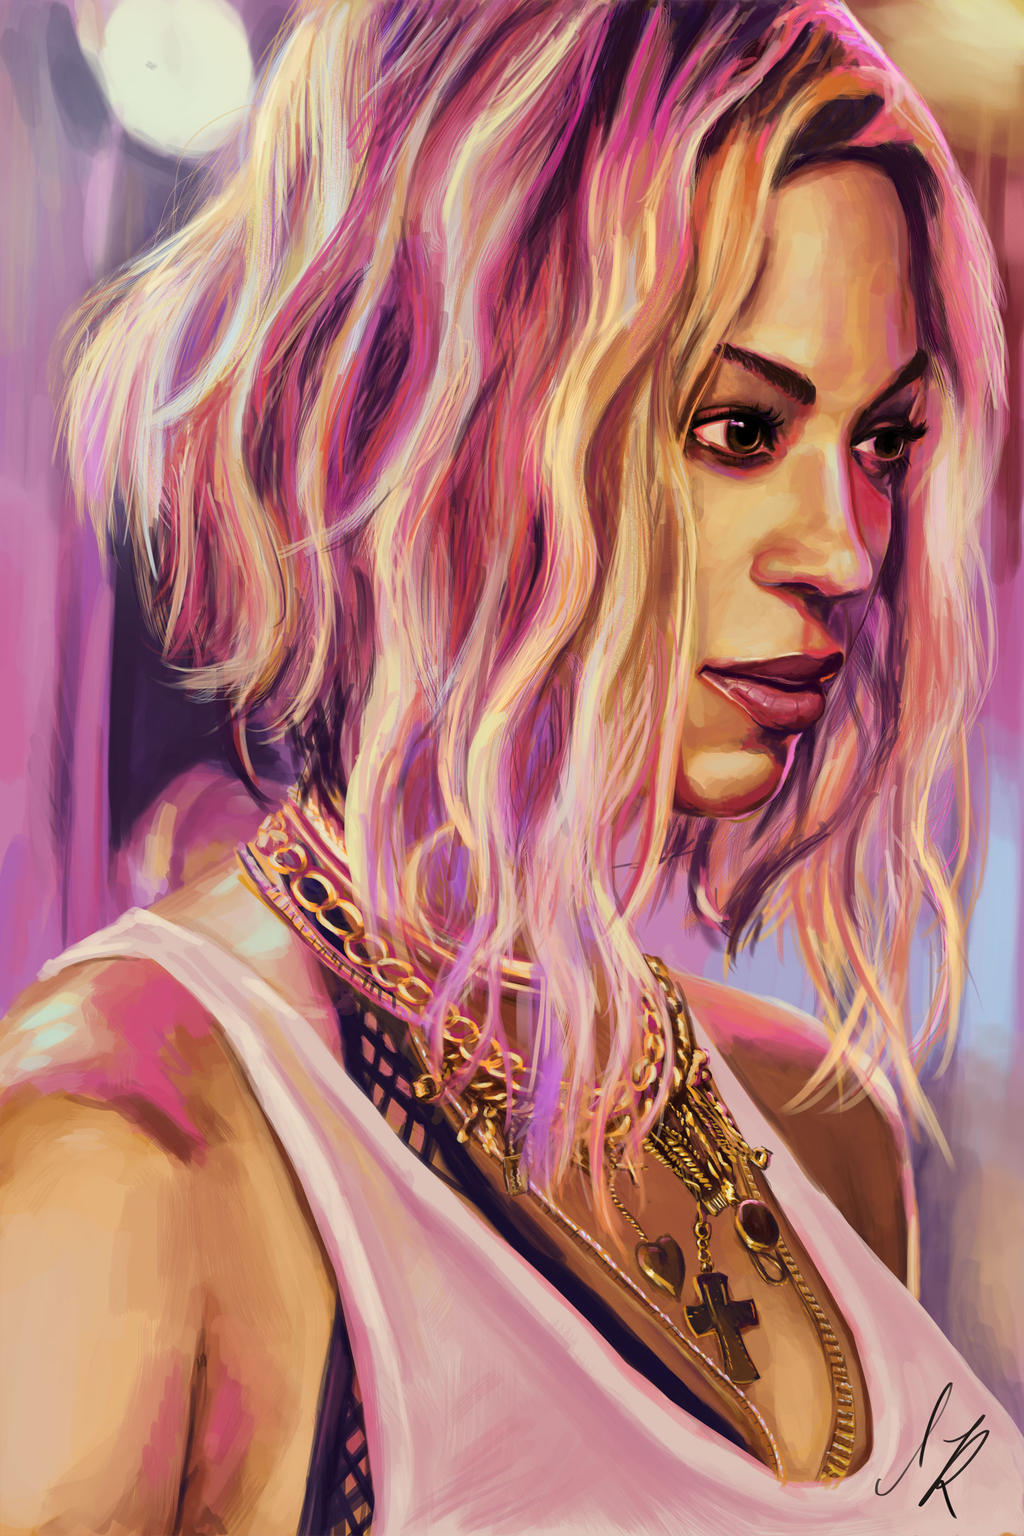 the beyonce project xo by ilairaz on deviantart